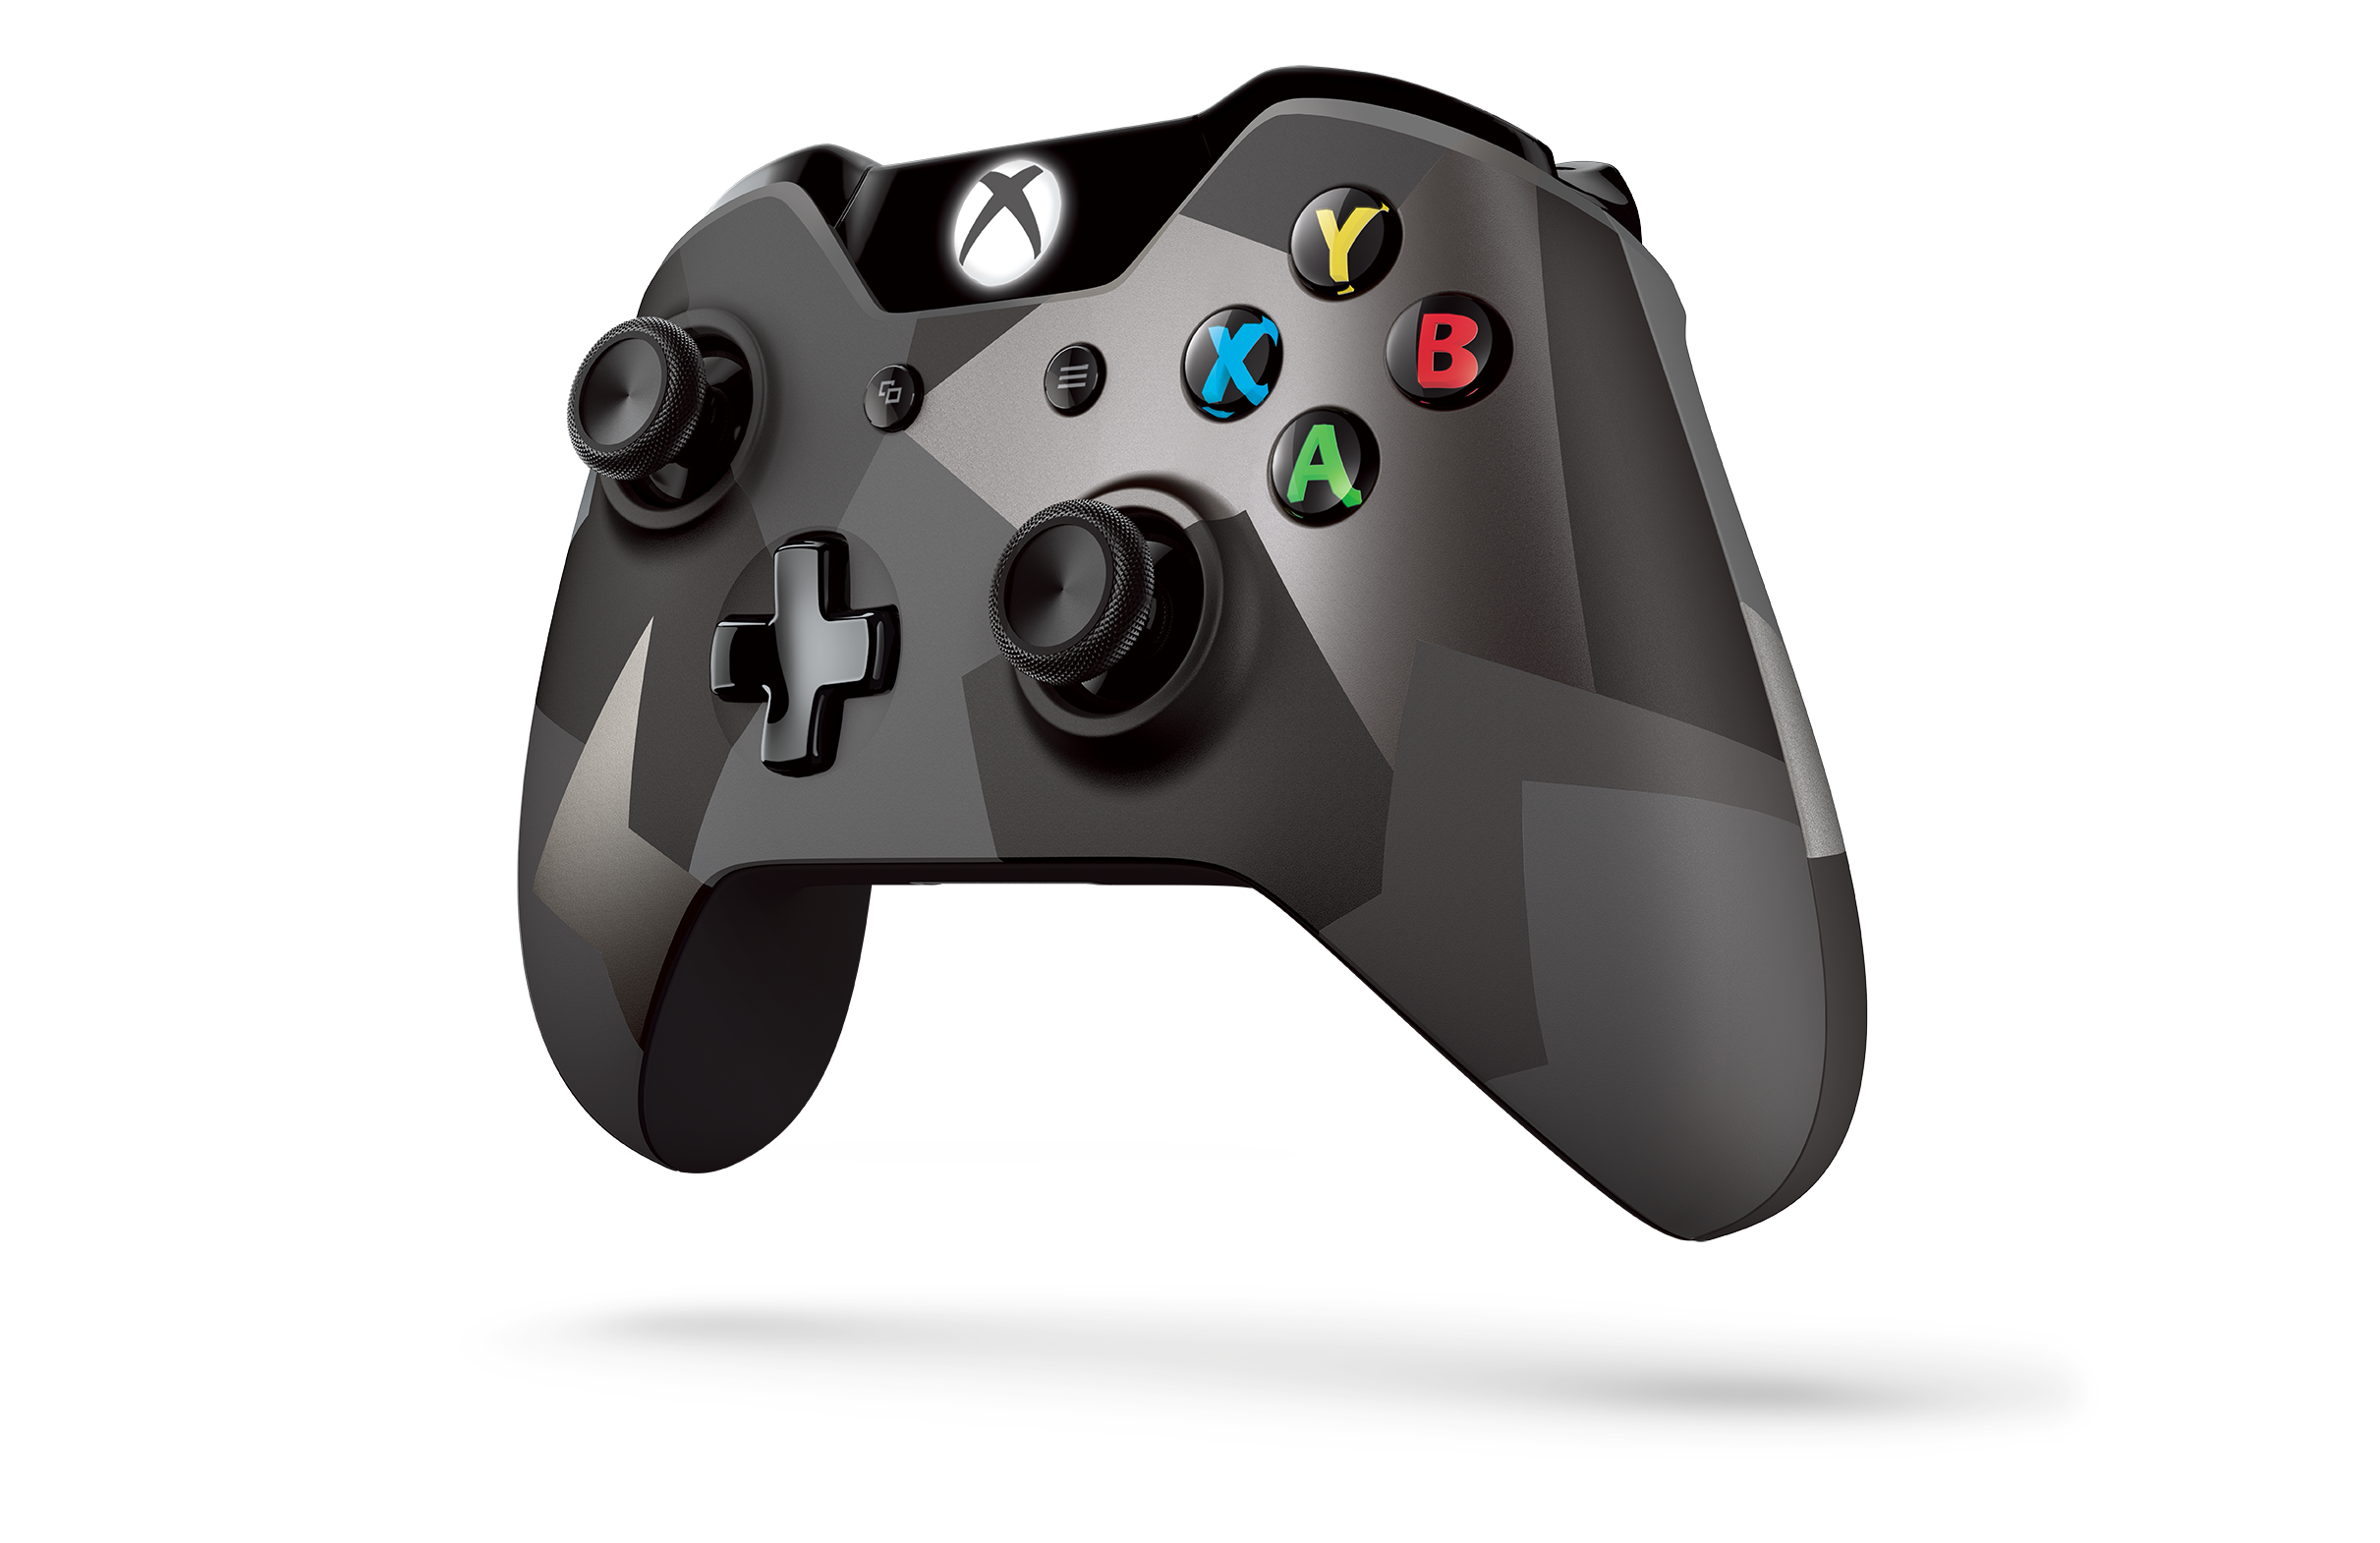 Pc controller png. Microsoft launches updated xbox